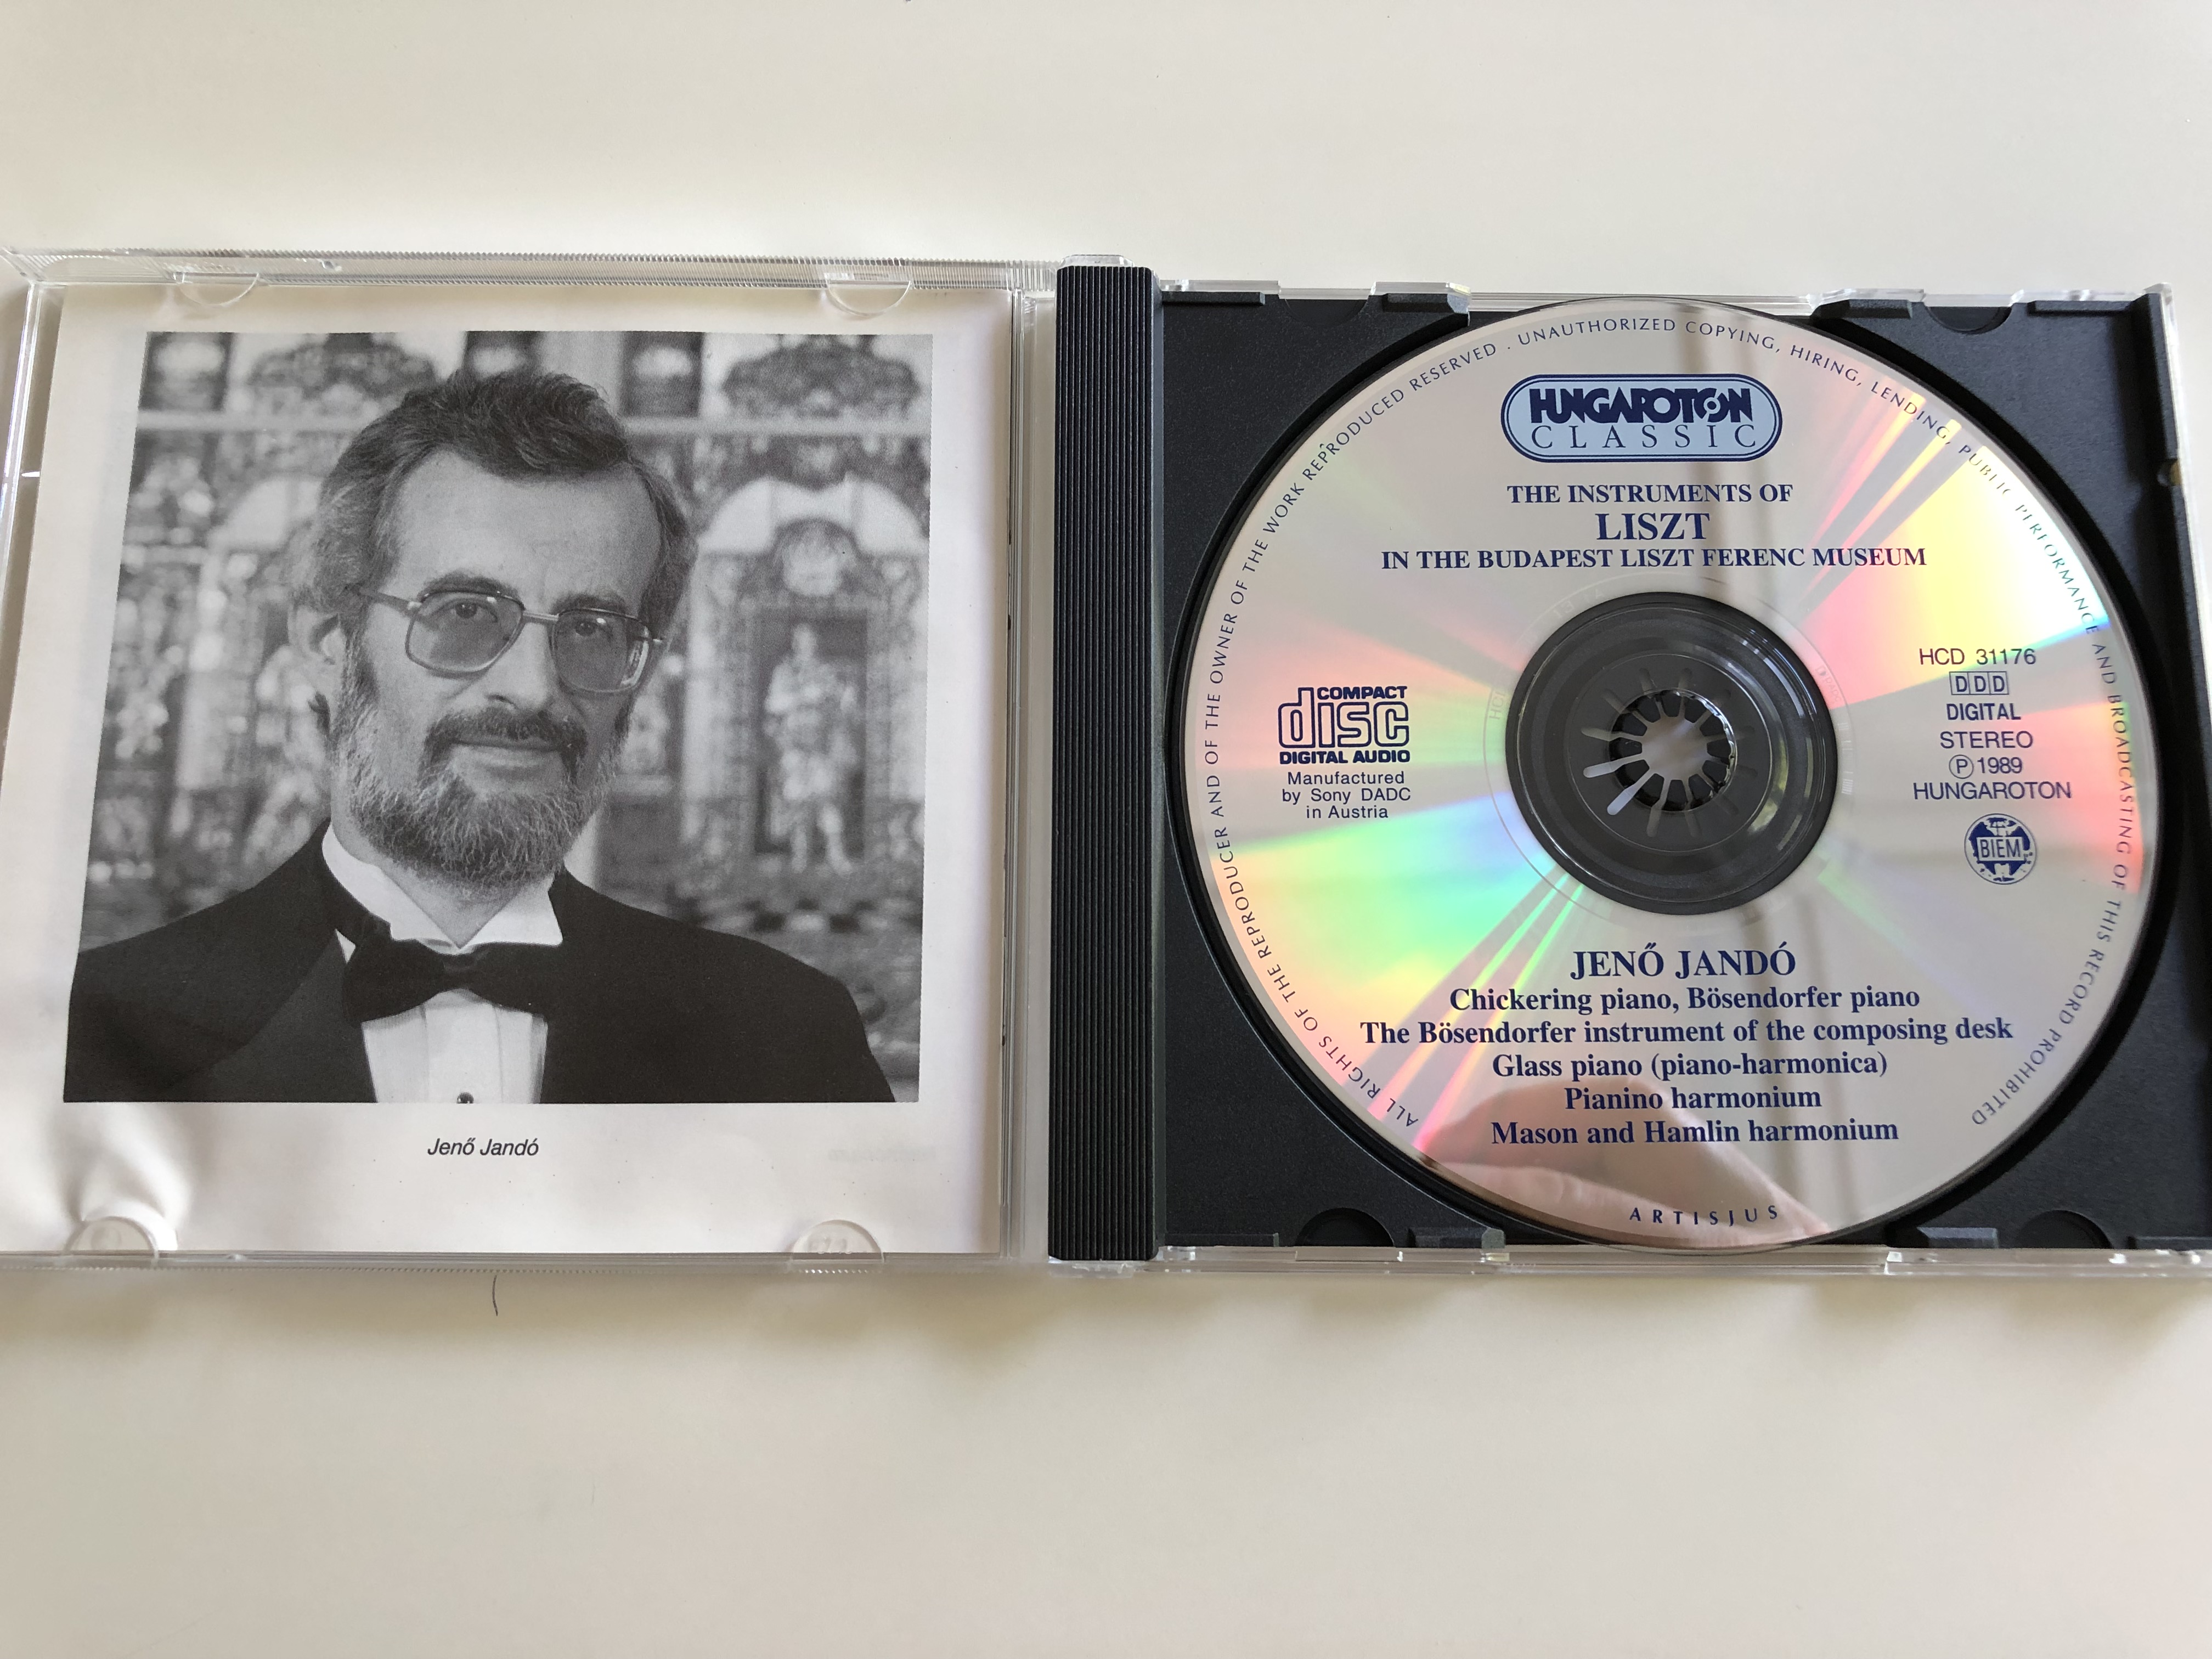 the-instruments-of-liszt-in-the-budapest-liszt-ferenc-museum-jen-jand-piano-hungaroton-classic-hcd-31176-audio-cd-1994-7-.jpg